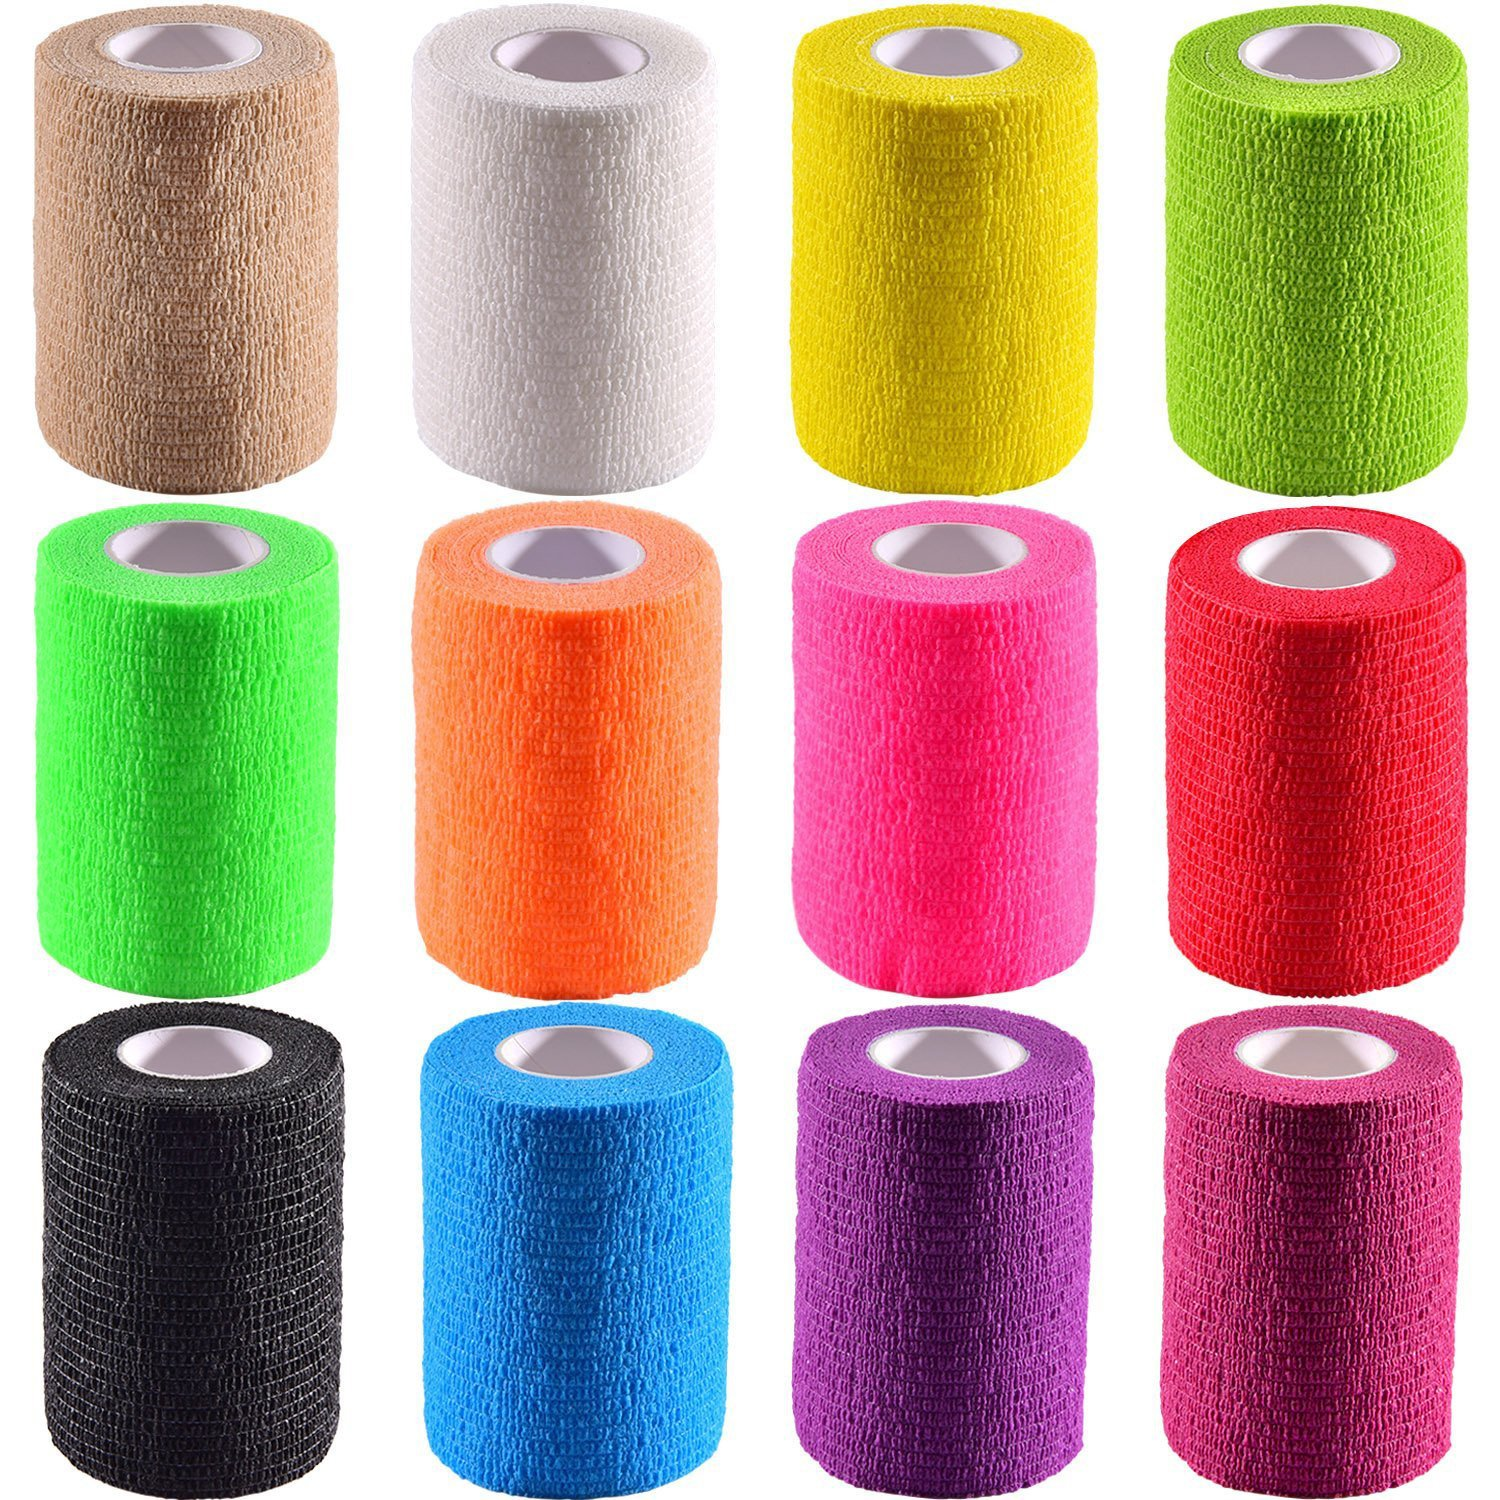 Pangda 12 Pieces Adhesive Bandage Wrap Stretch Self-Adherent Tape for Sports, Wrist, Ankle, 5 Yards Each (3 Inch, 12 Colors) by Pangda